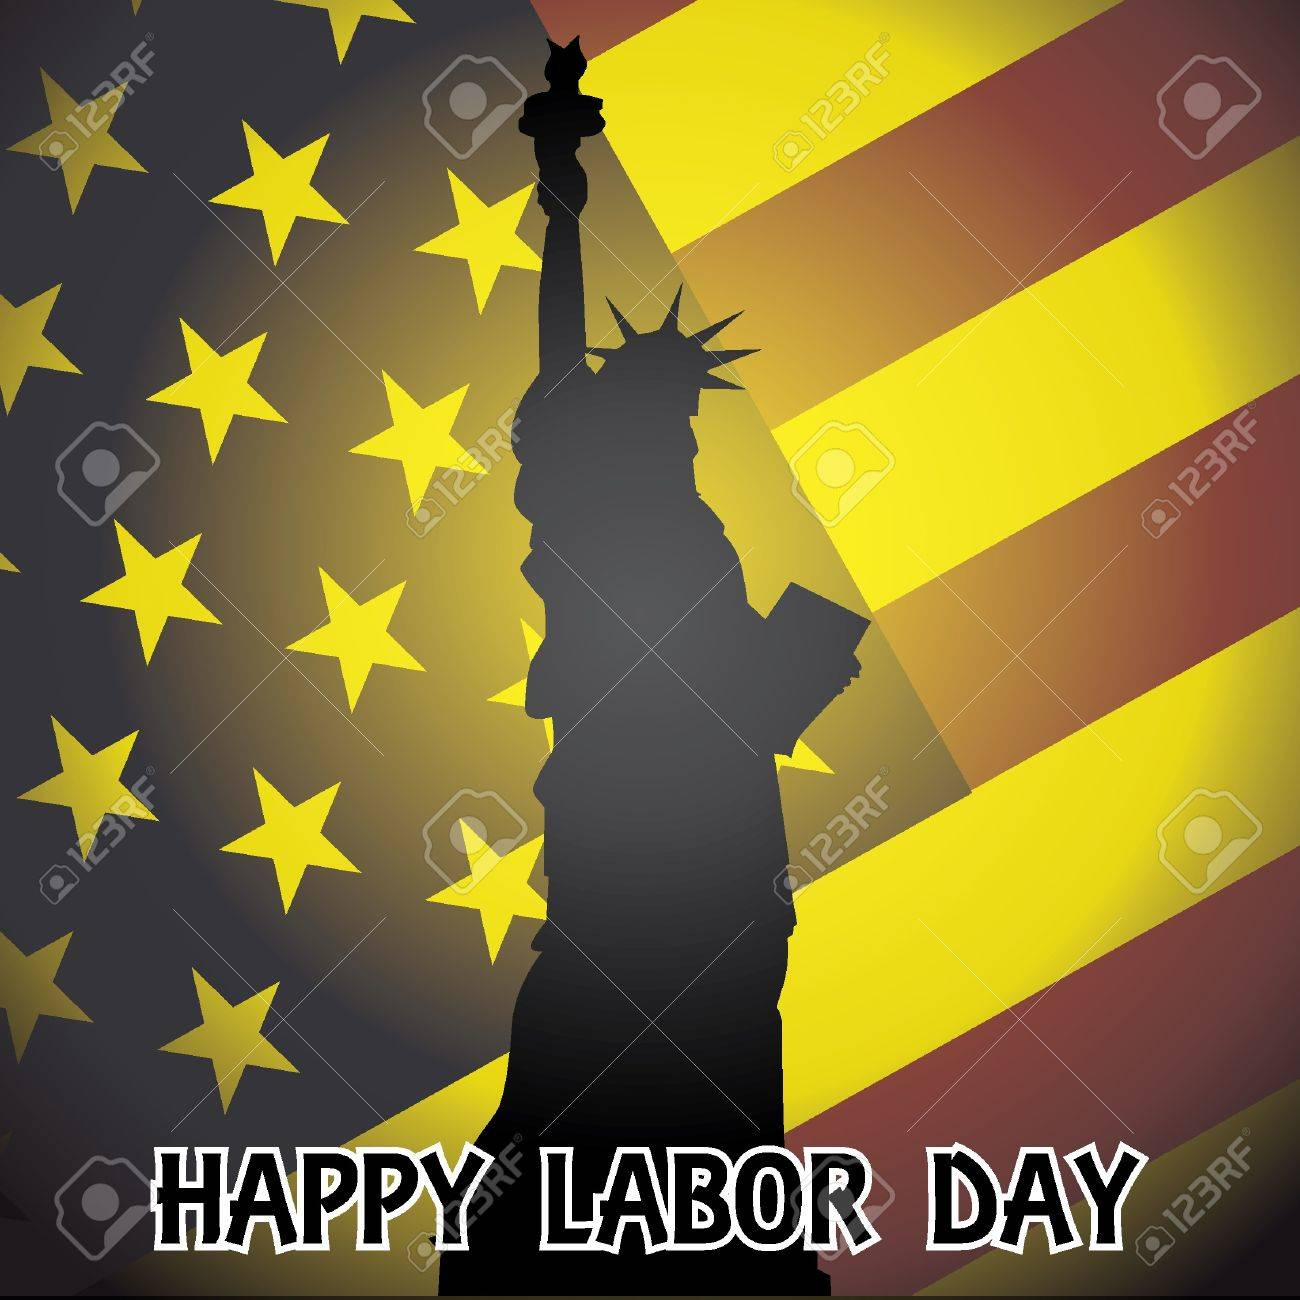 happy labor day - illustration Stock Vector - 12454861